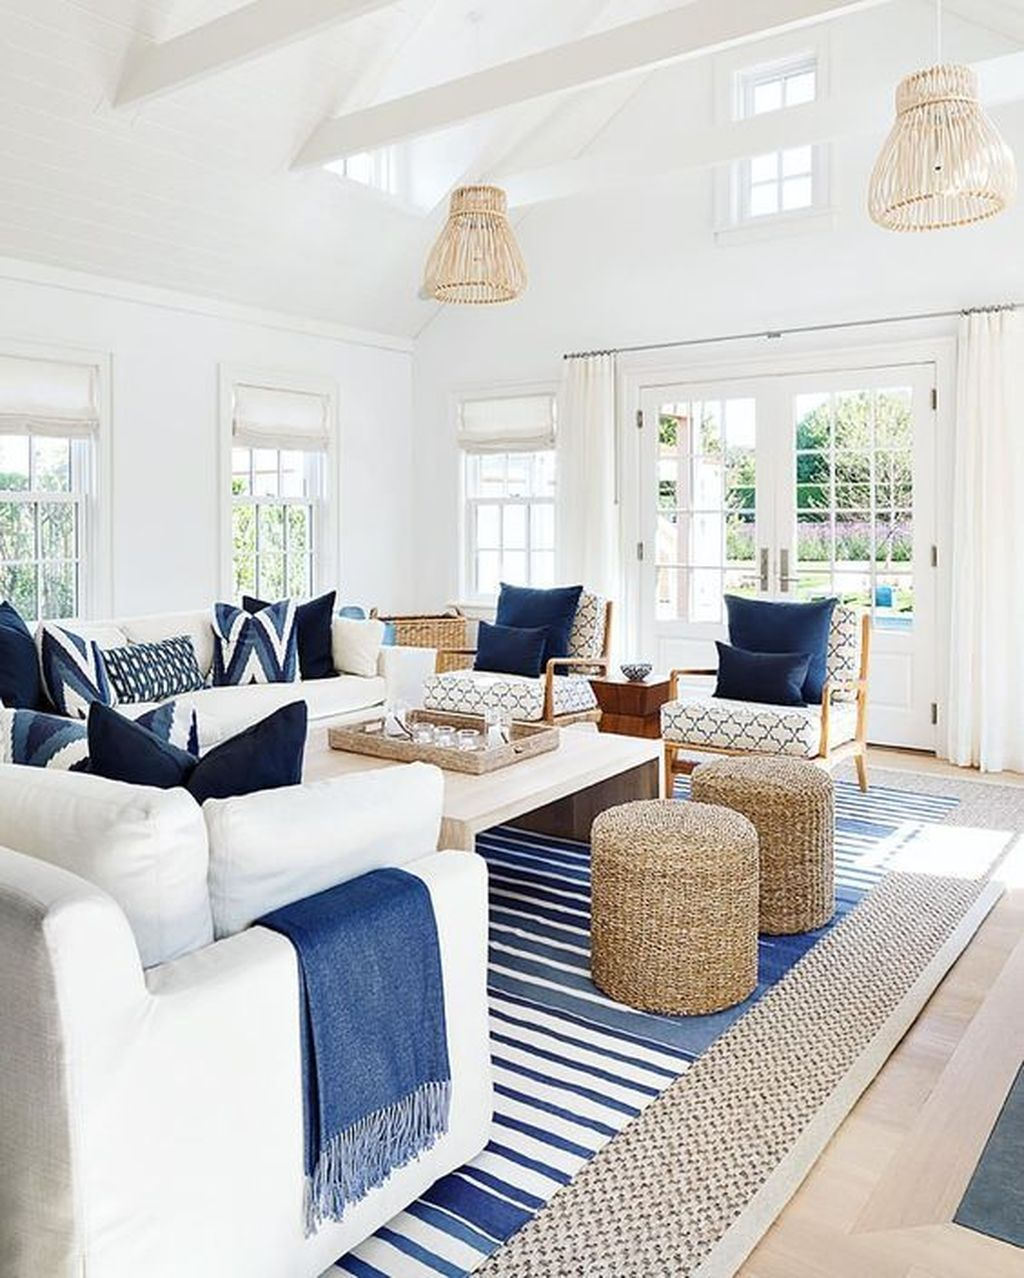 Pin On Living Room Decor Beach home living room decorating